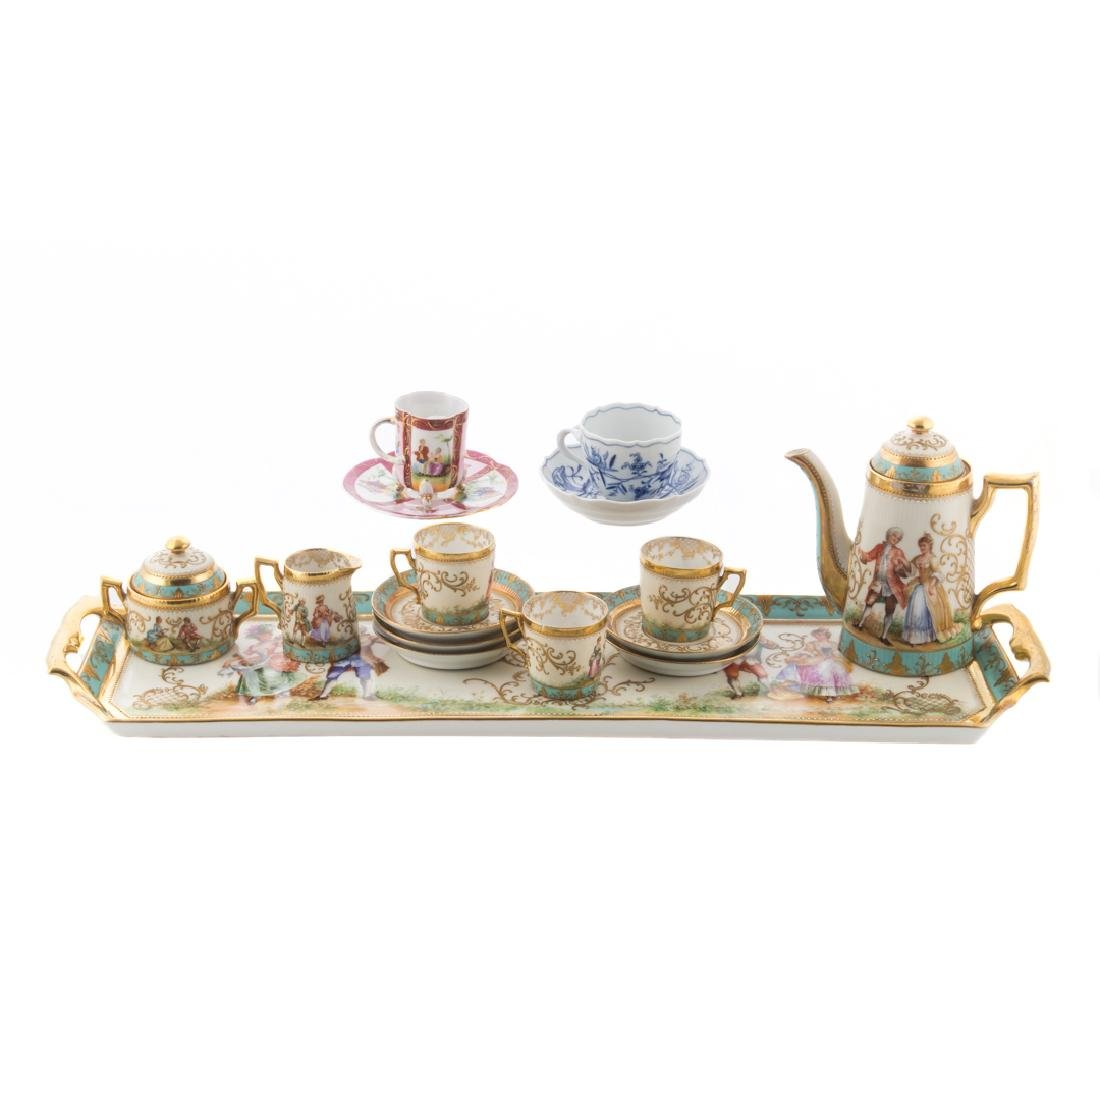 Dresden porcelain partial tea service